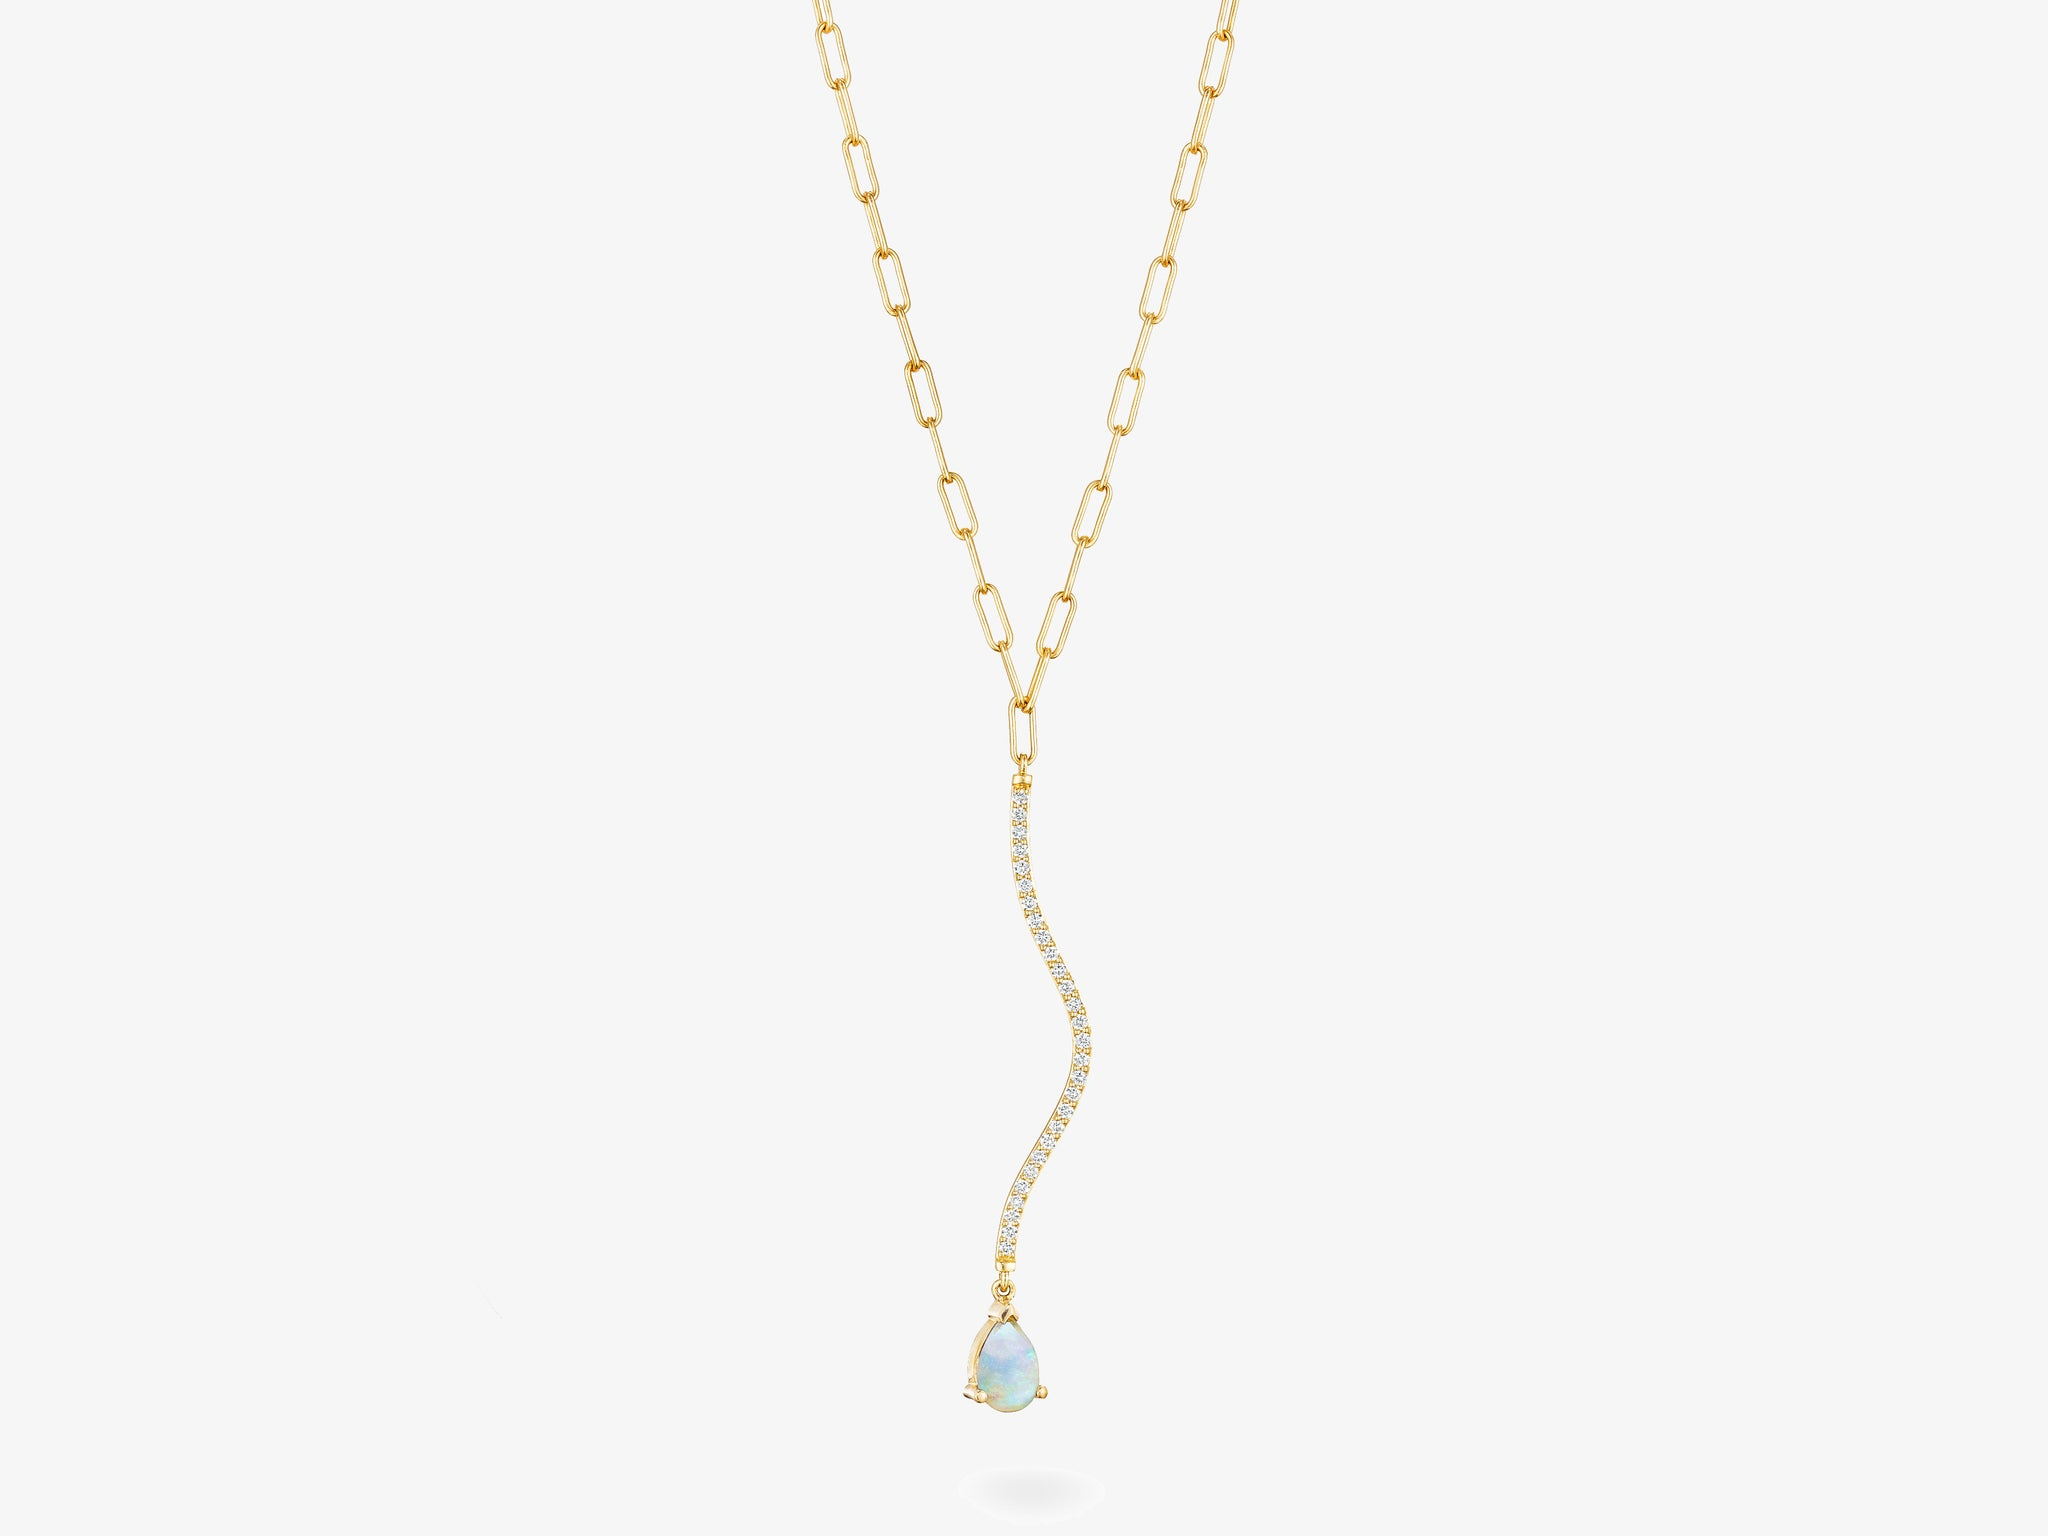 Curved Diamond Pave Bar Necklace with Pear Shaped Gemstone